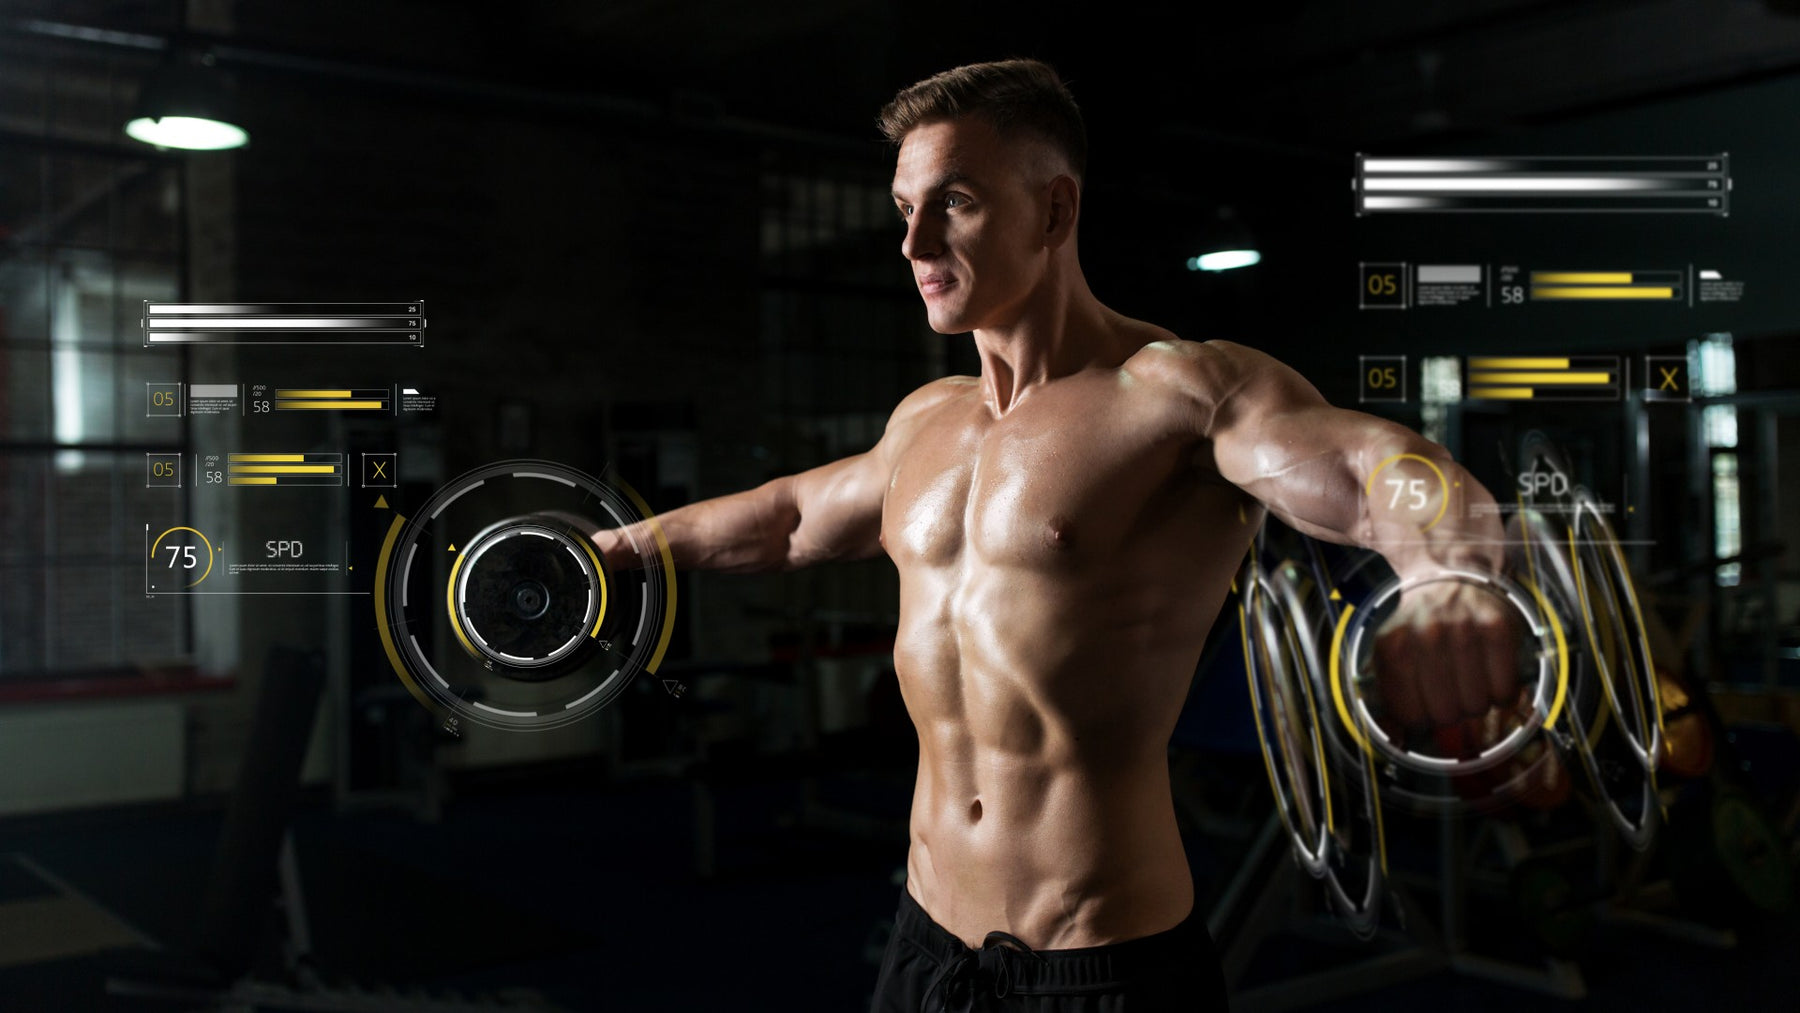 How to Build Muscle: 10 Training Principles